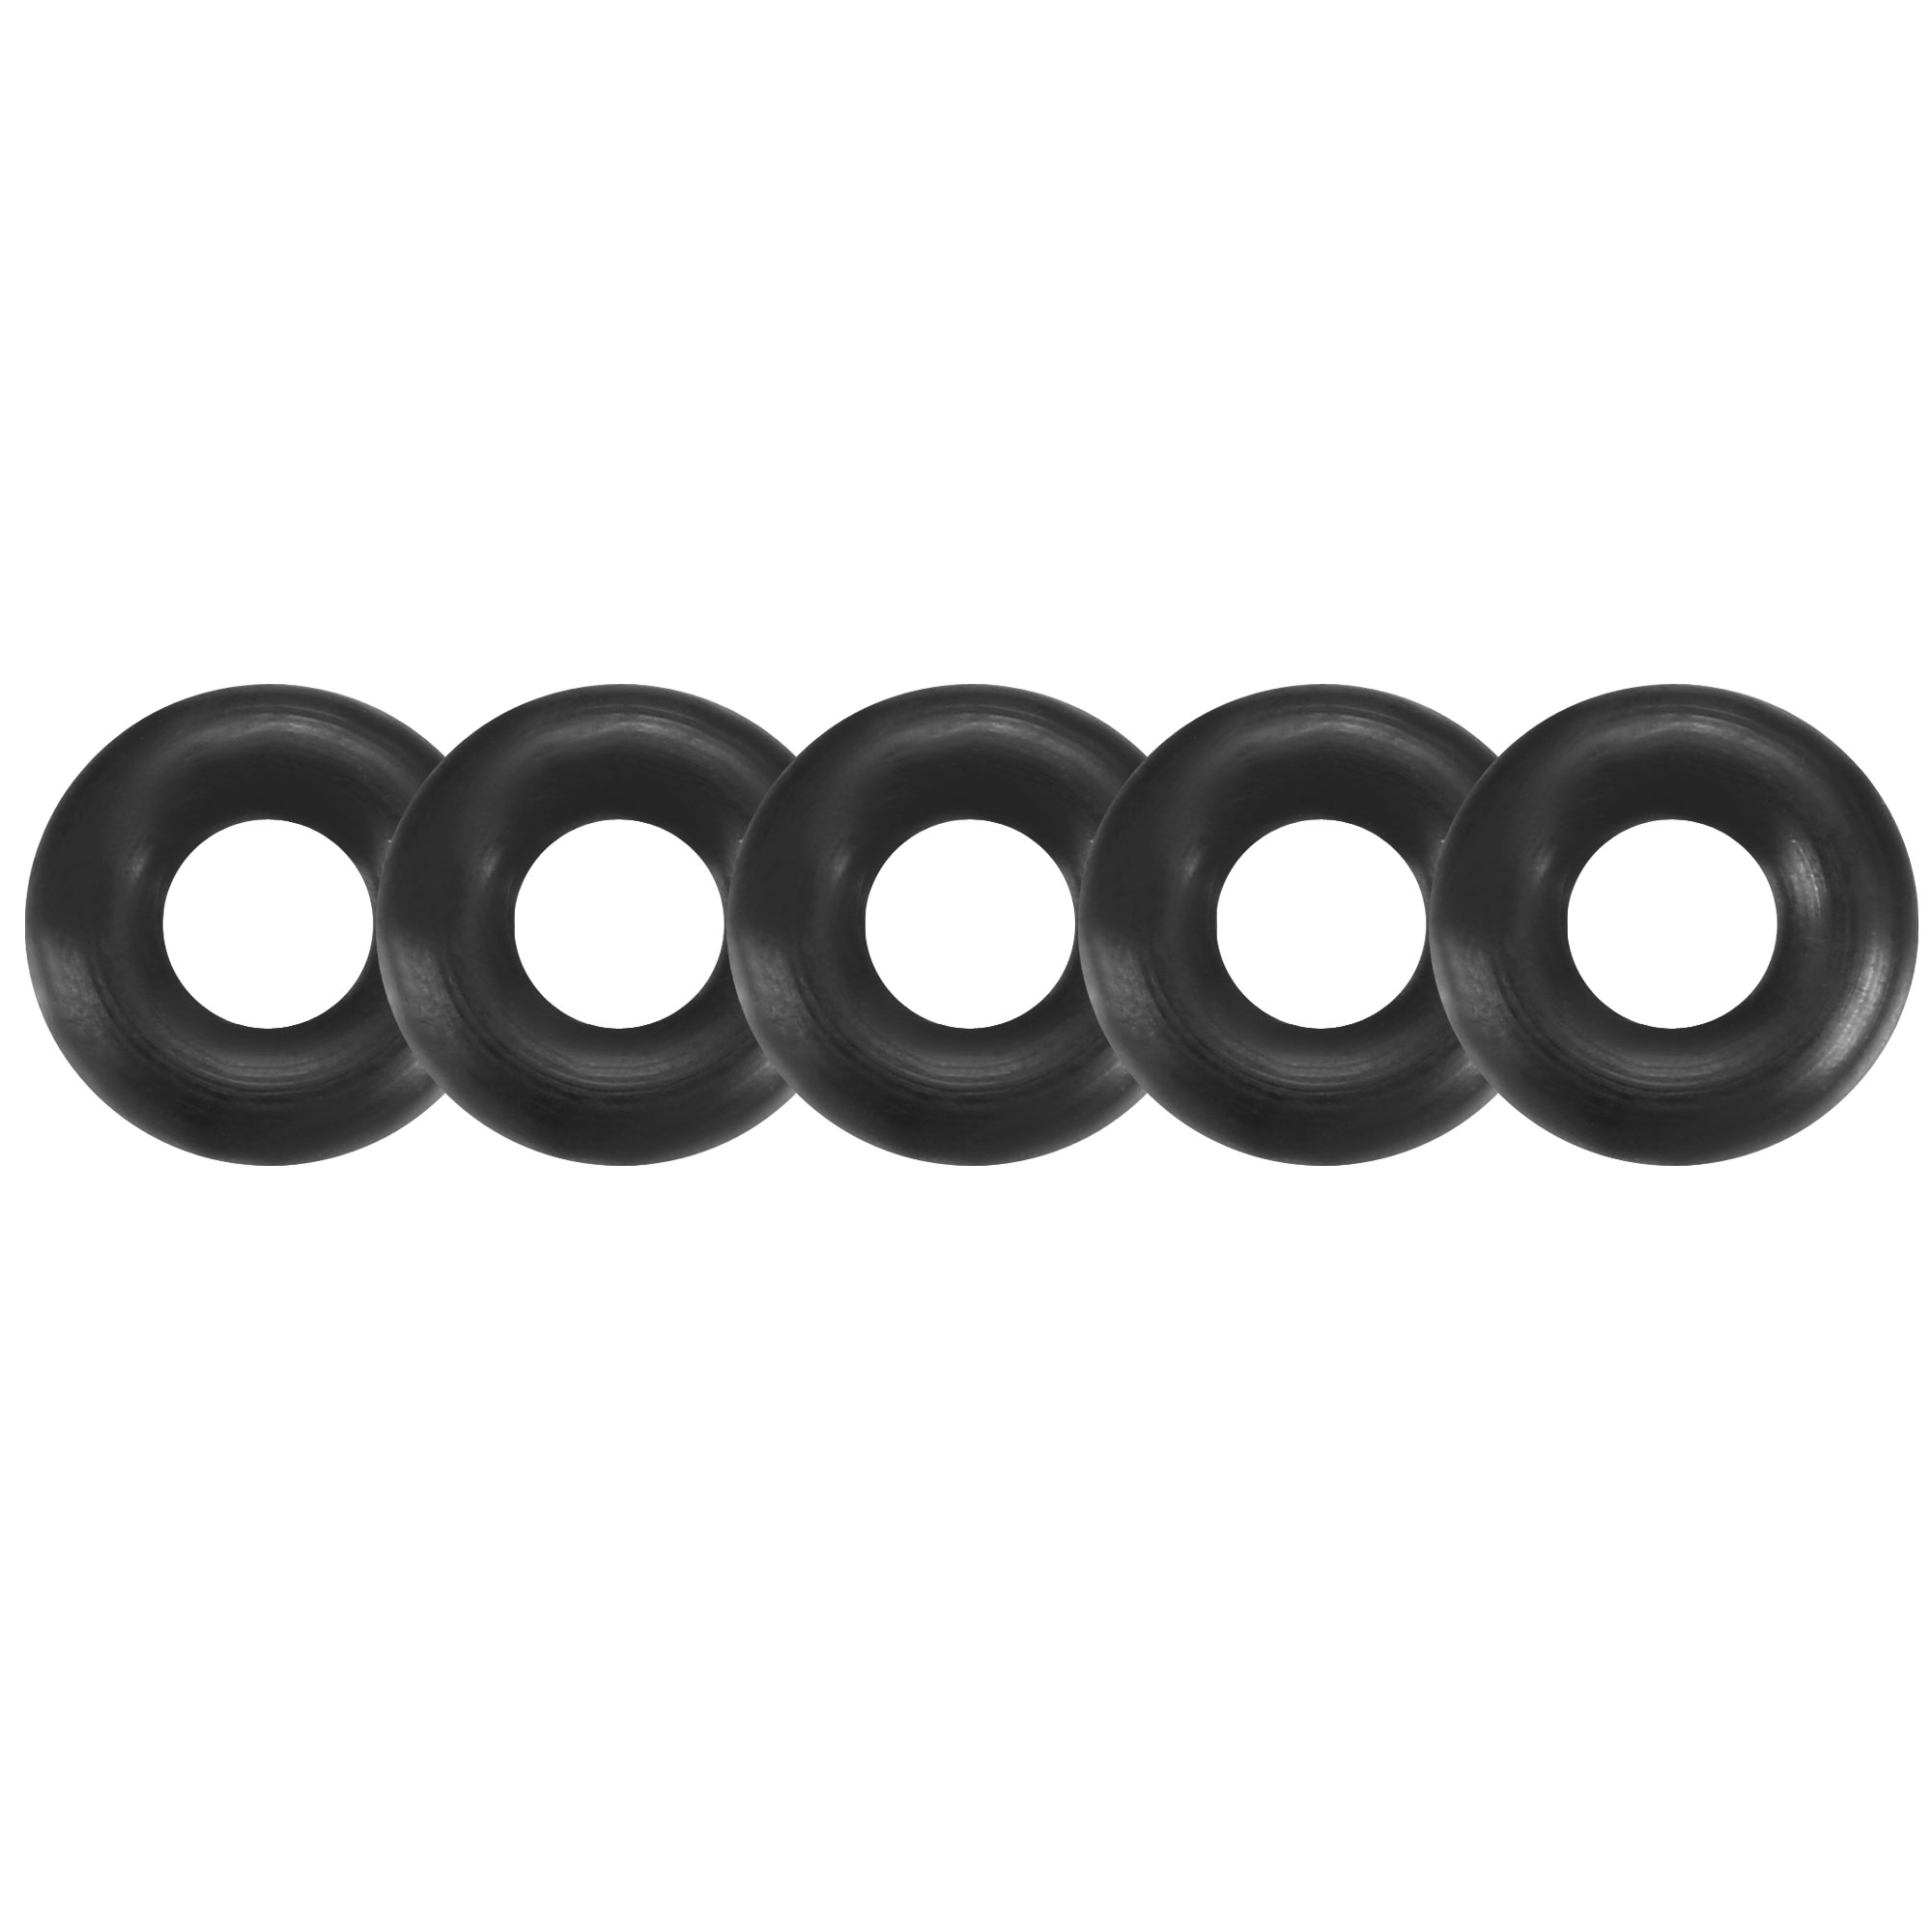 50 Pcs Black 6.5mm x 2mm Rubber Oil Resistant Sealing Ring O-Type Grommets